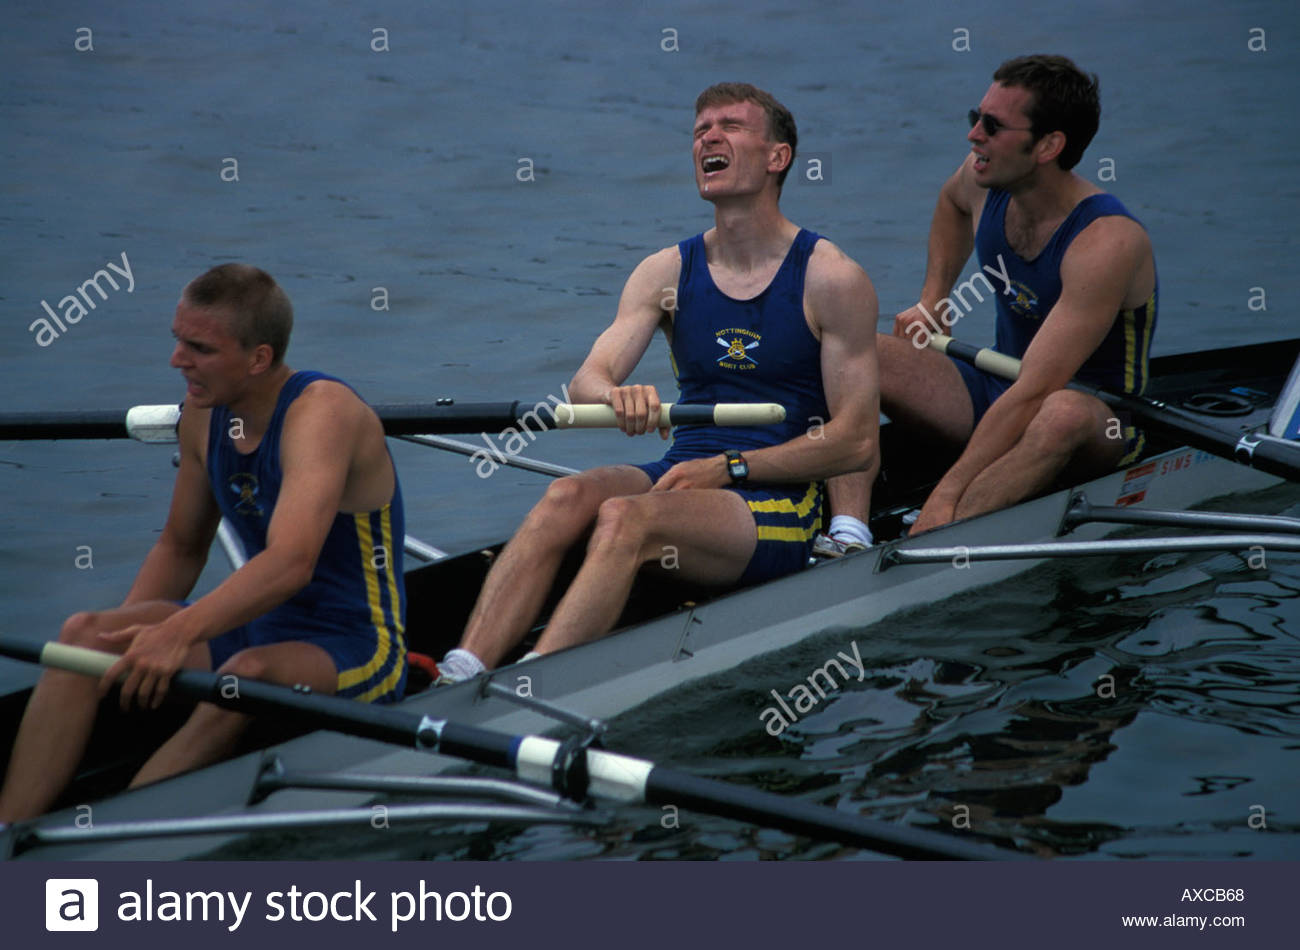 The pain of defeat for rowing competitors during the annual Henley Royal Regatta, UK - Stock Image